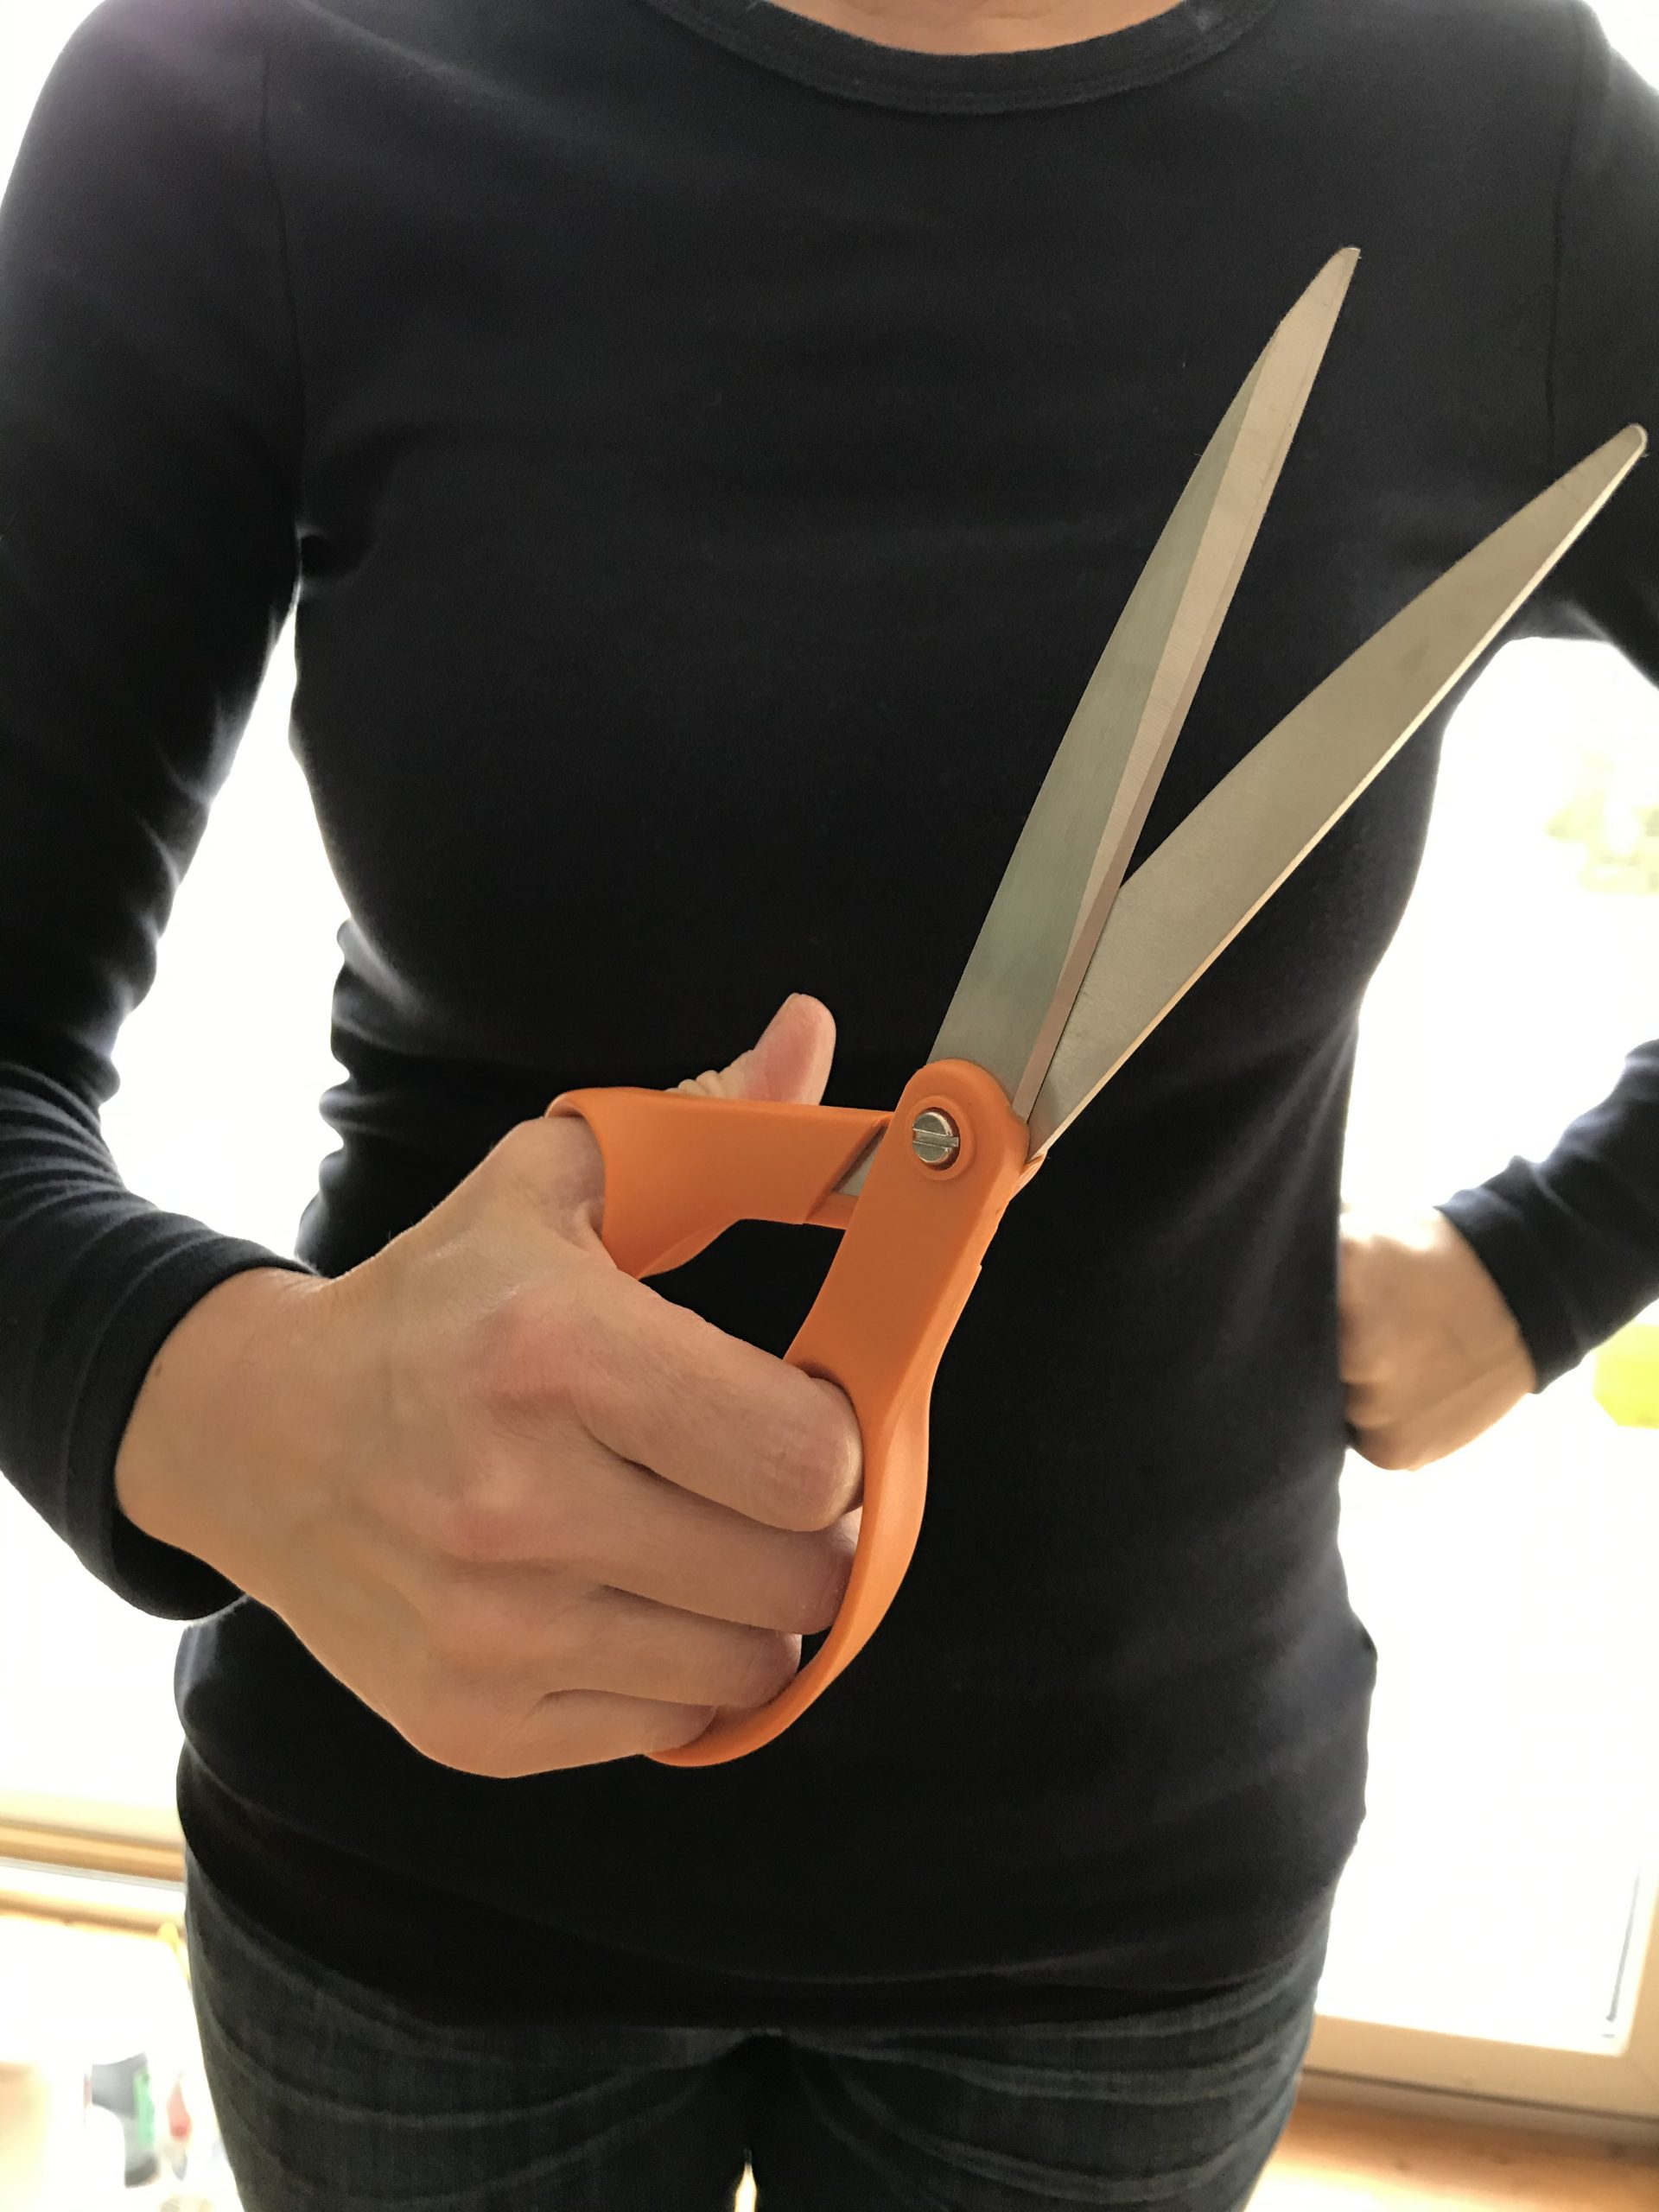 Is There Really A Right Way to Hold Scissors?